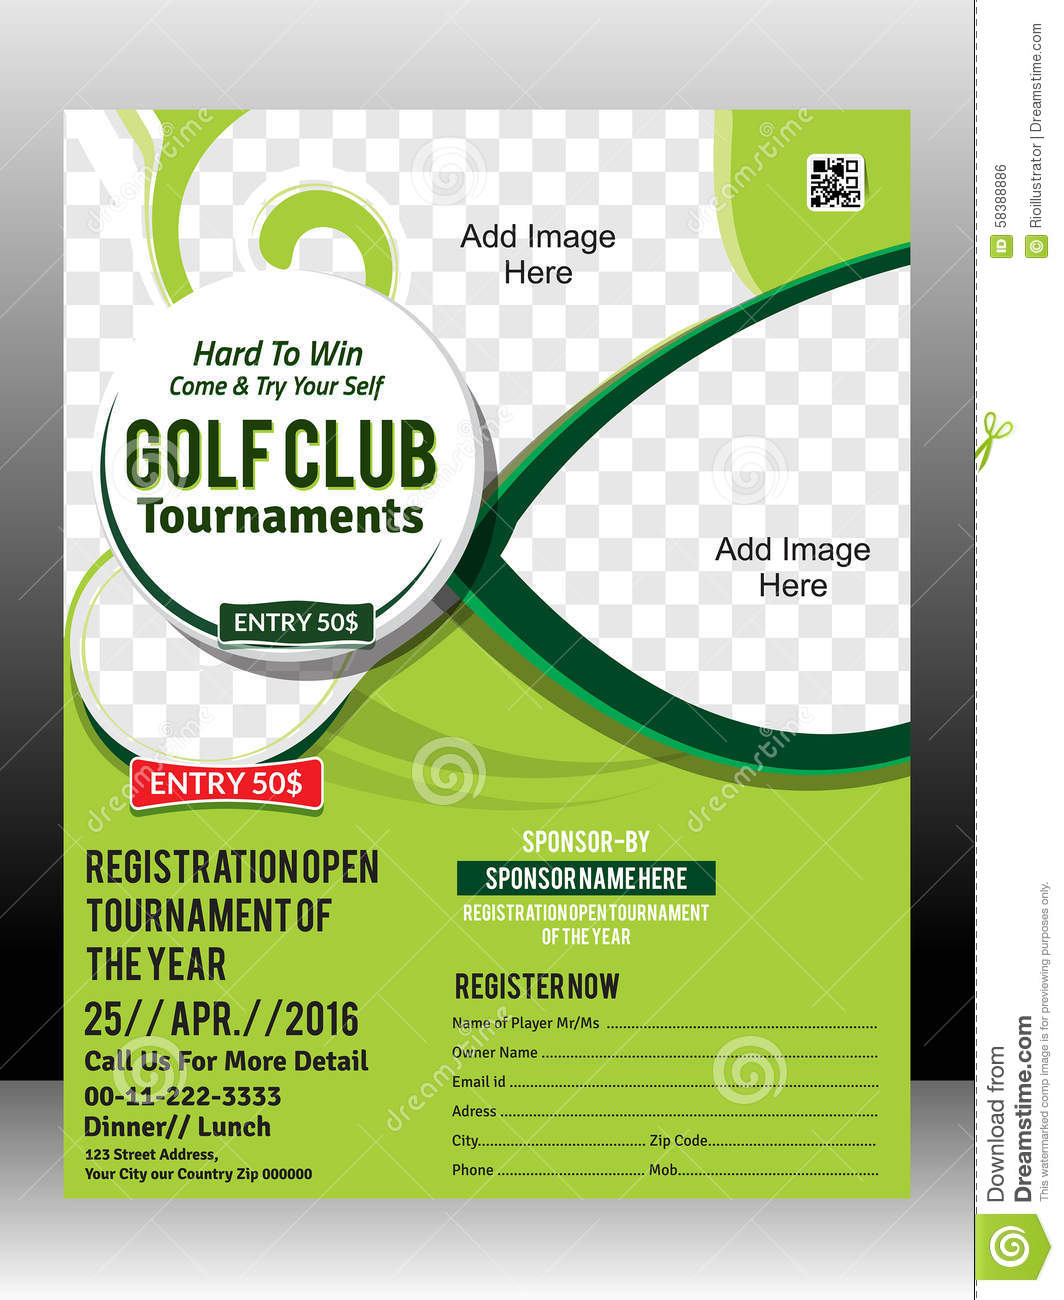 Golf Tournament Flyer Template Design Illustration Vector – Competition Flyer Template